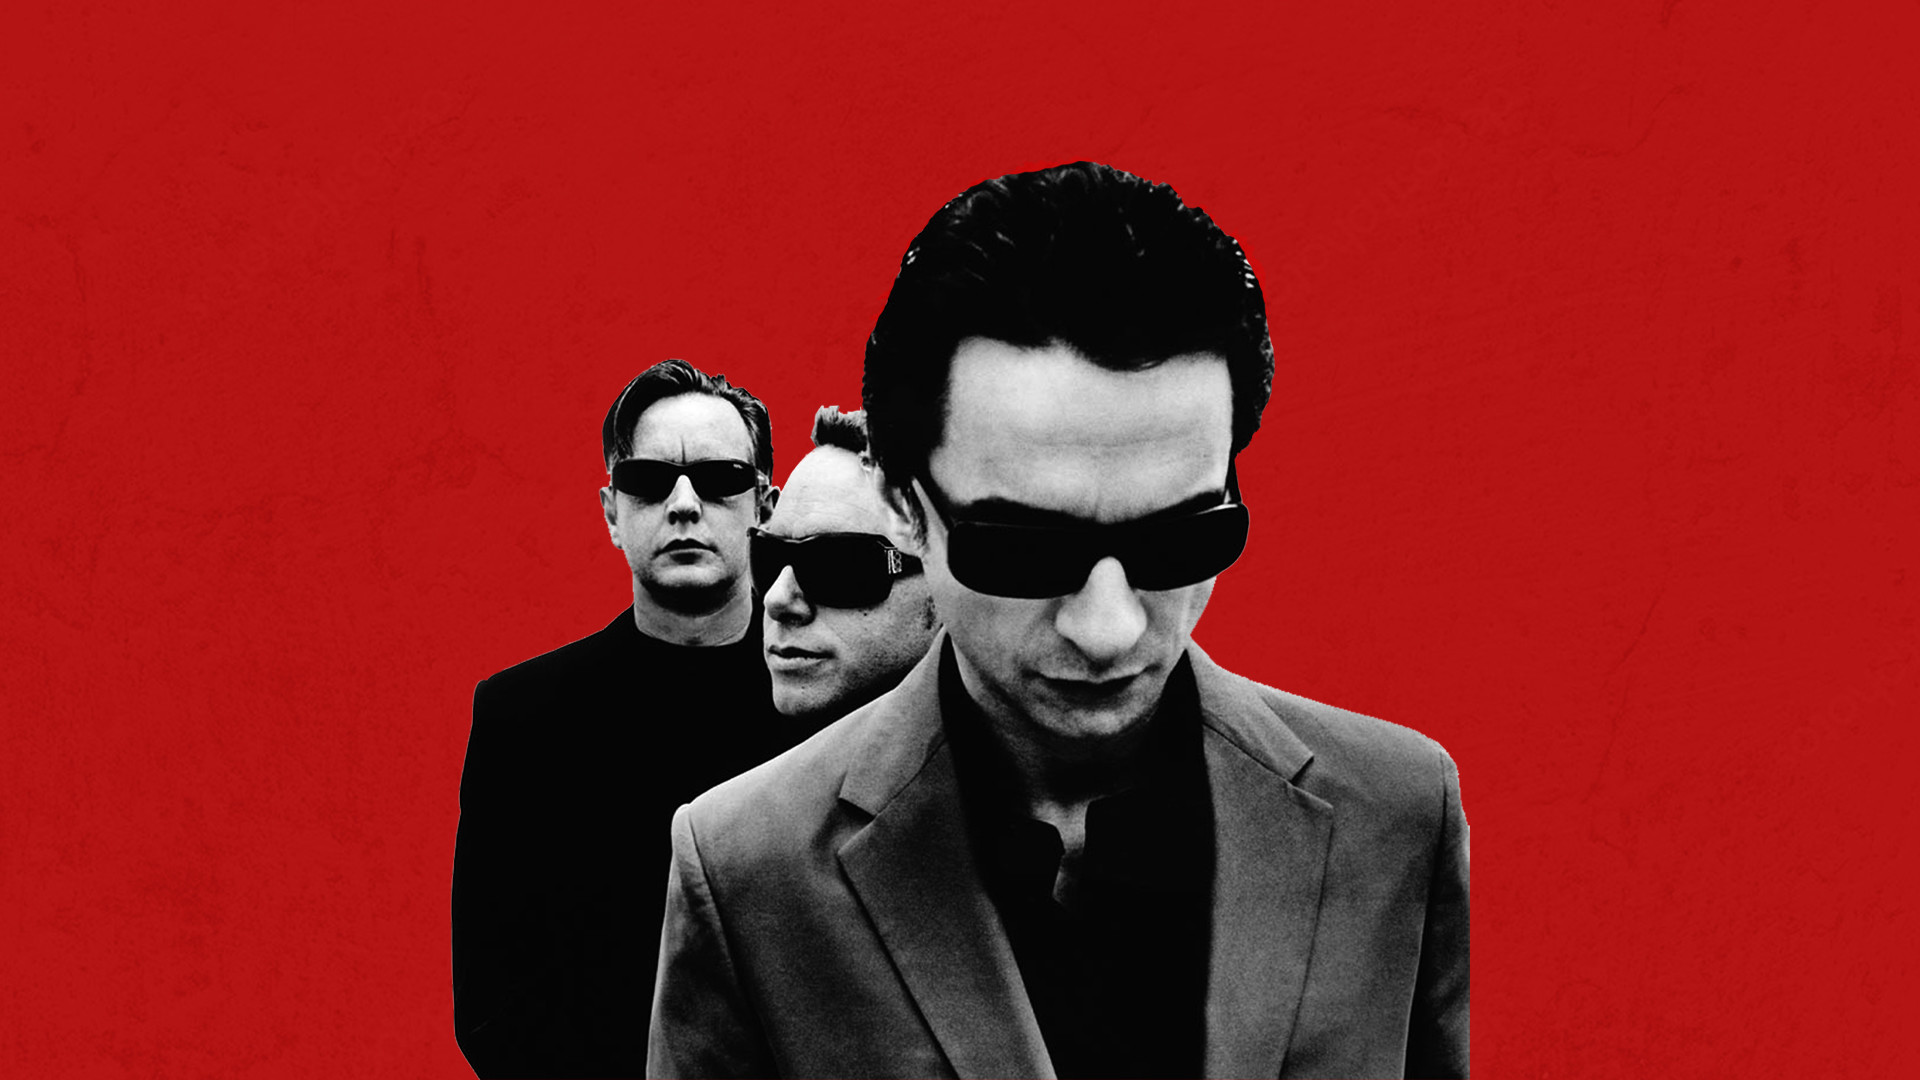 THE SYMPHONY TRIBUTE TO DEPECHE MODE